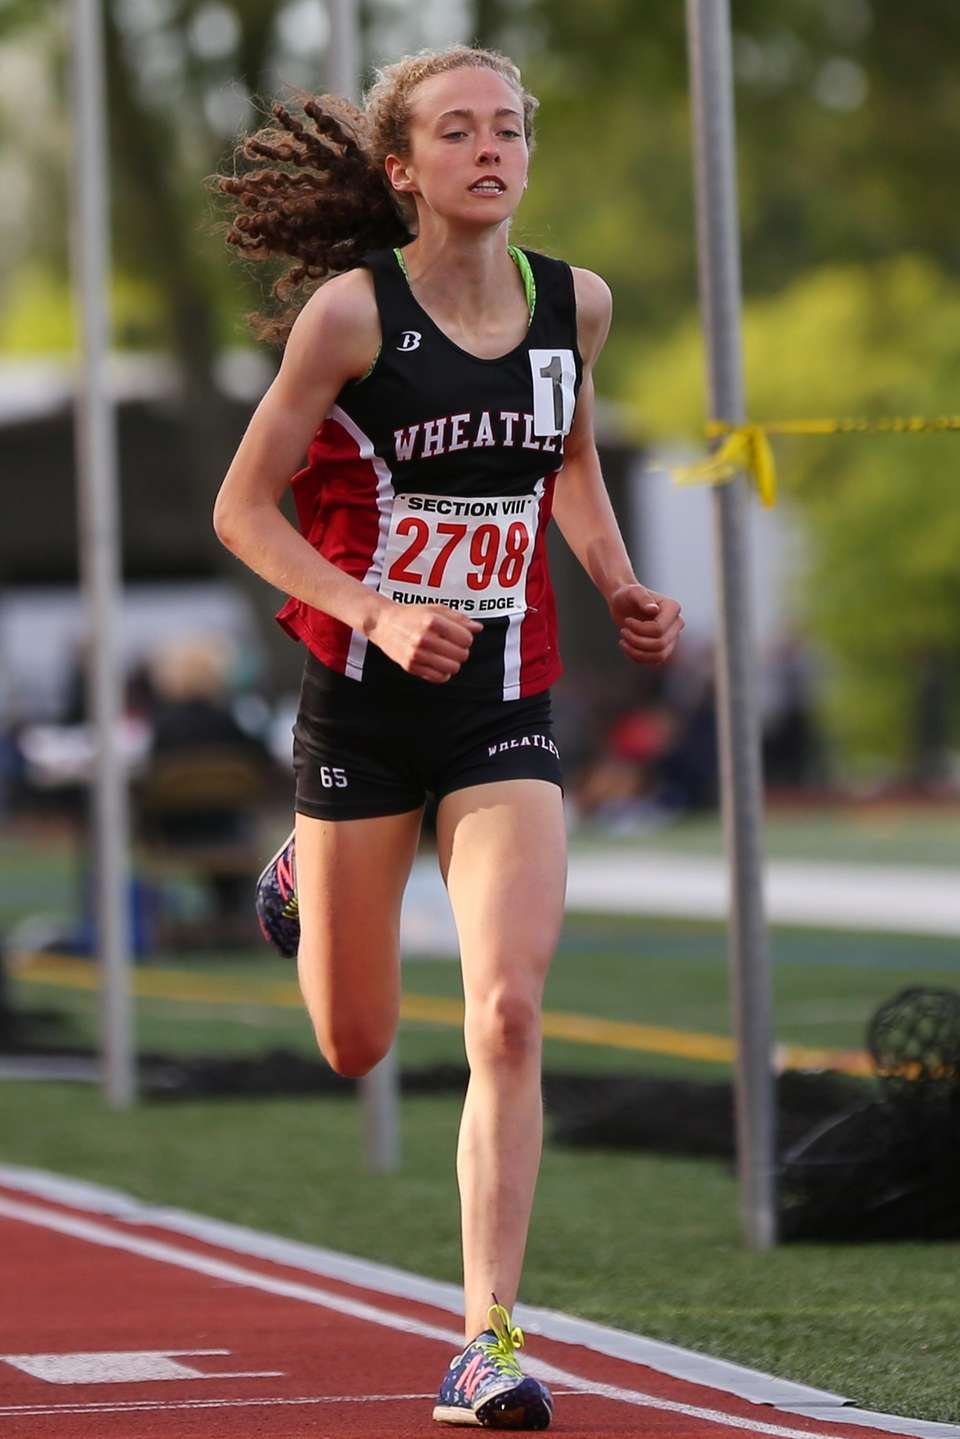 Brianna O'Brien of Wheatley competes in the girls